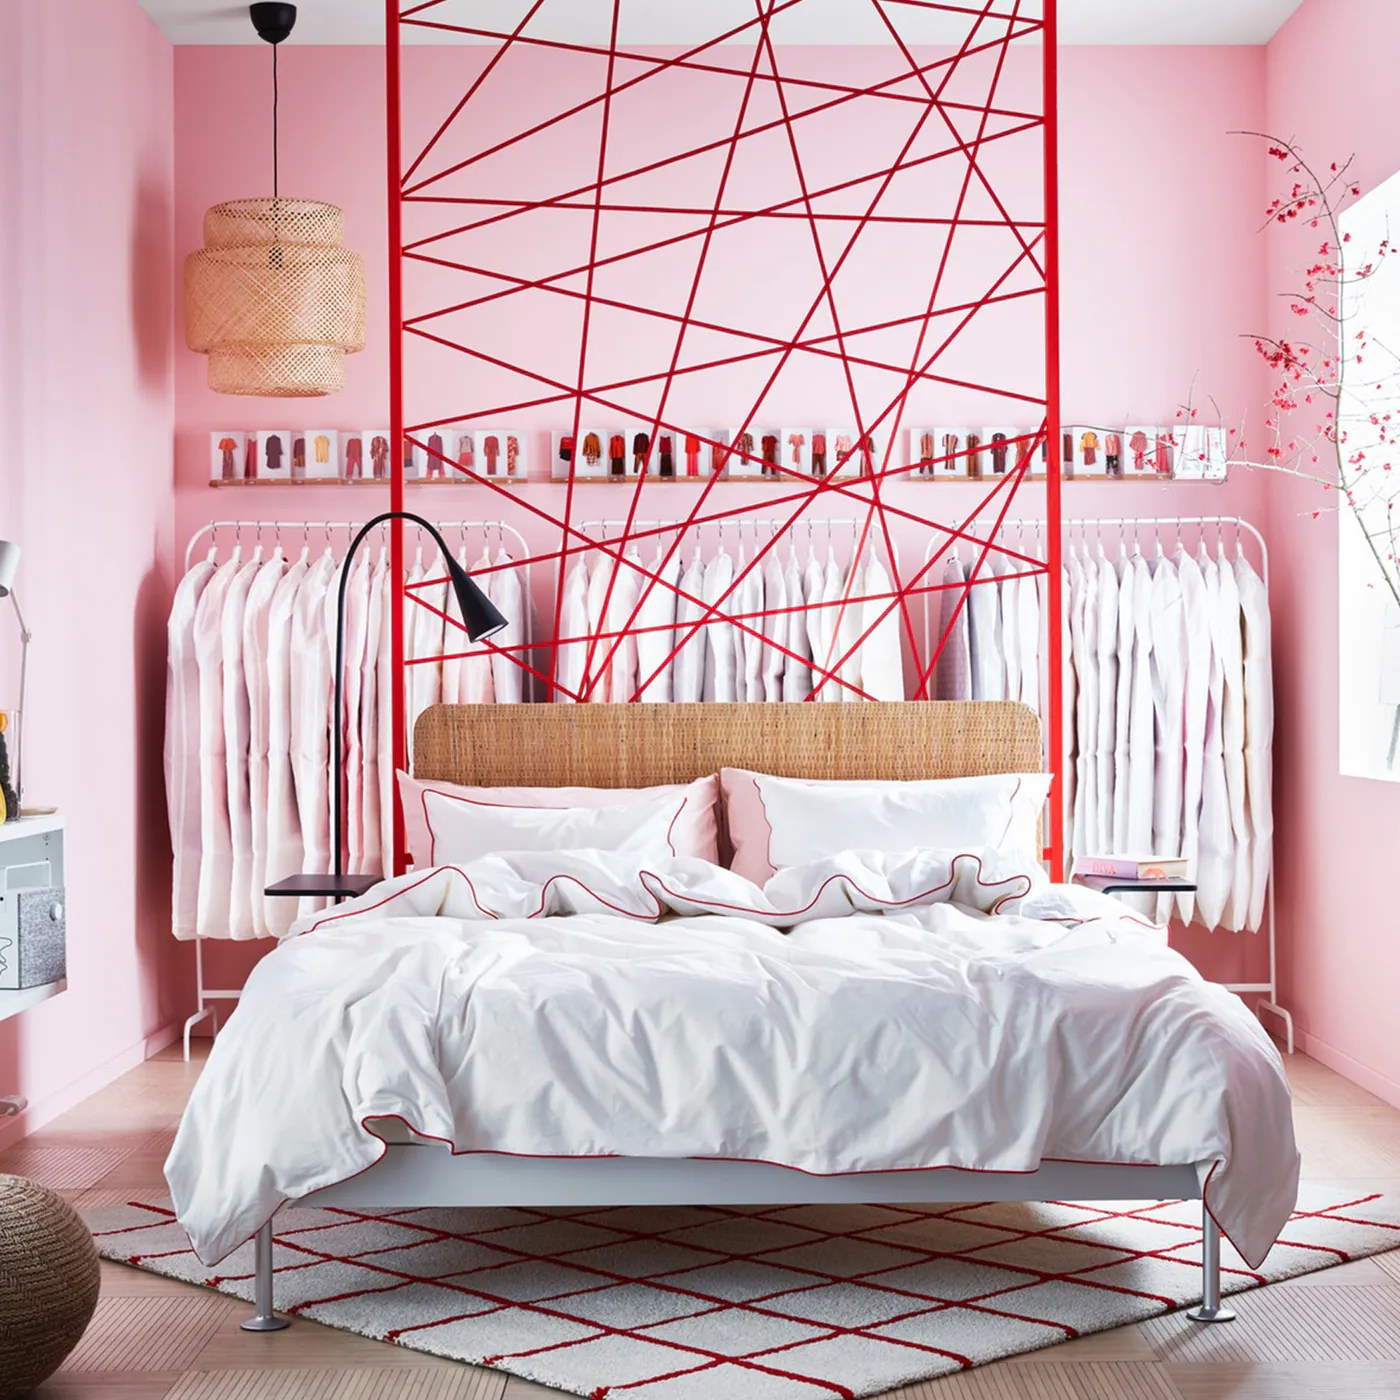 Https Www Ikea Com At De Rooms Bedroom Gallery Platz Fuer Sie Und Sie Pub30181343 Weekly 9 2019 11 12t15 27 16 493z Https Www Ikea Com At De Rooms Bedroom Gallery Organisation Mit Ivar Pubeea0205e Weekly 1 Https Www Ikea Com Images Mit